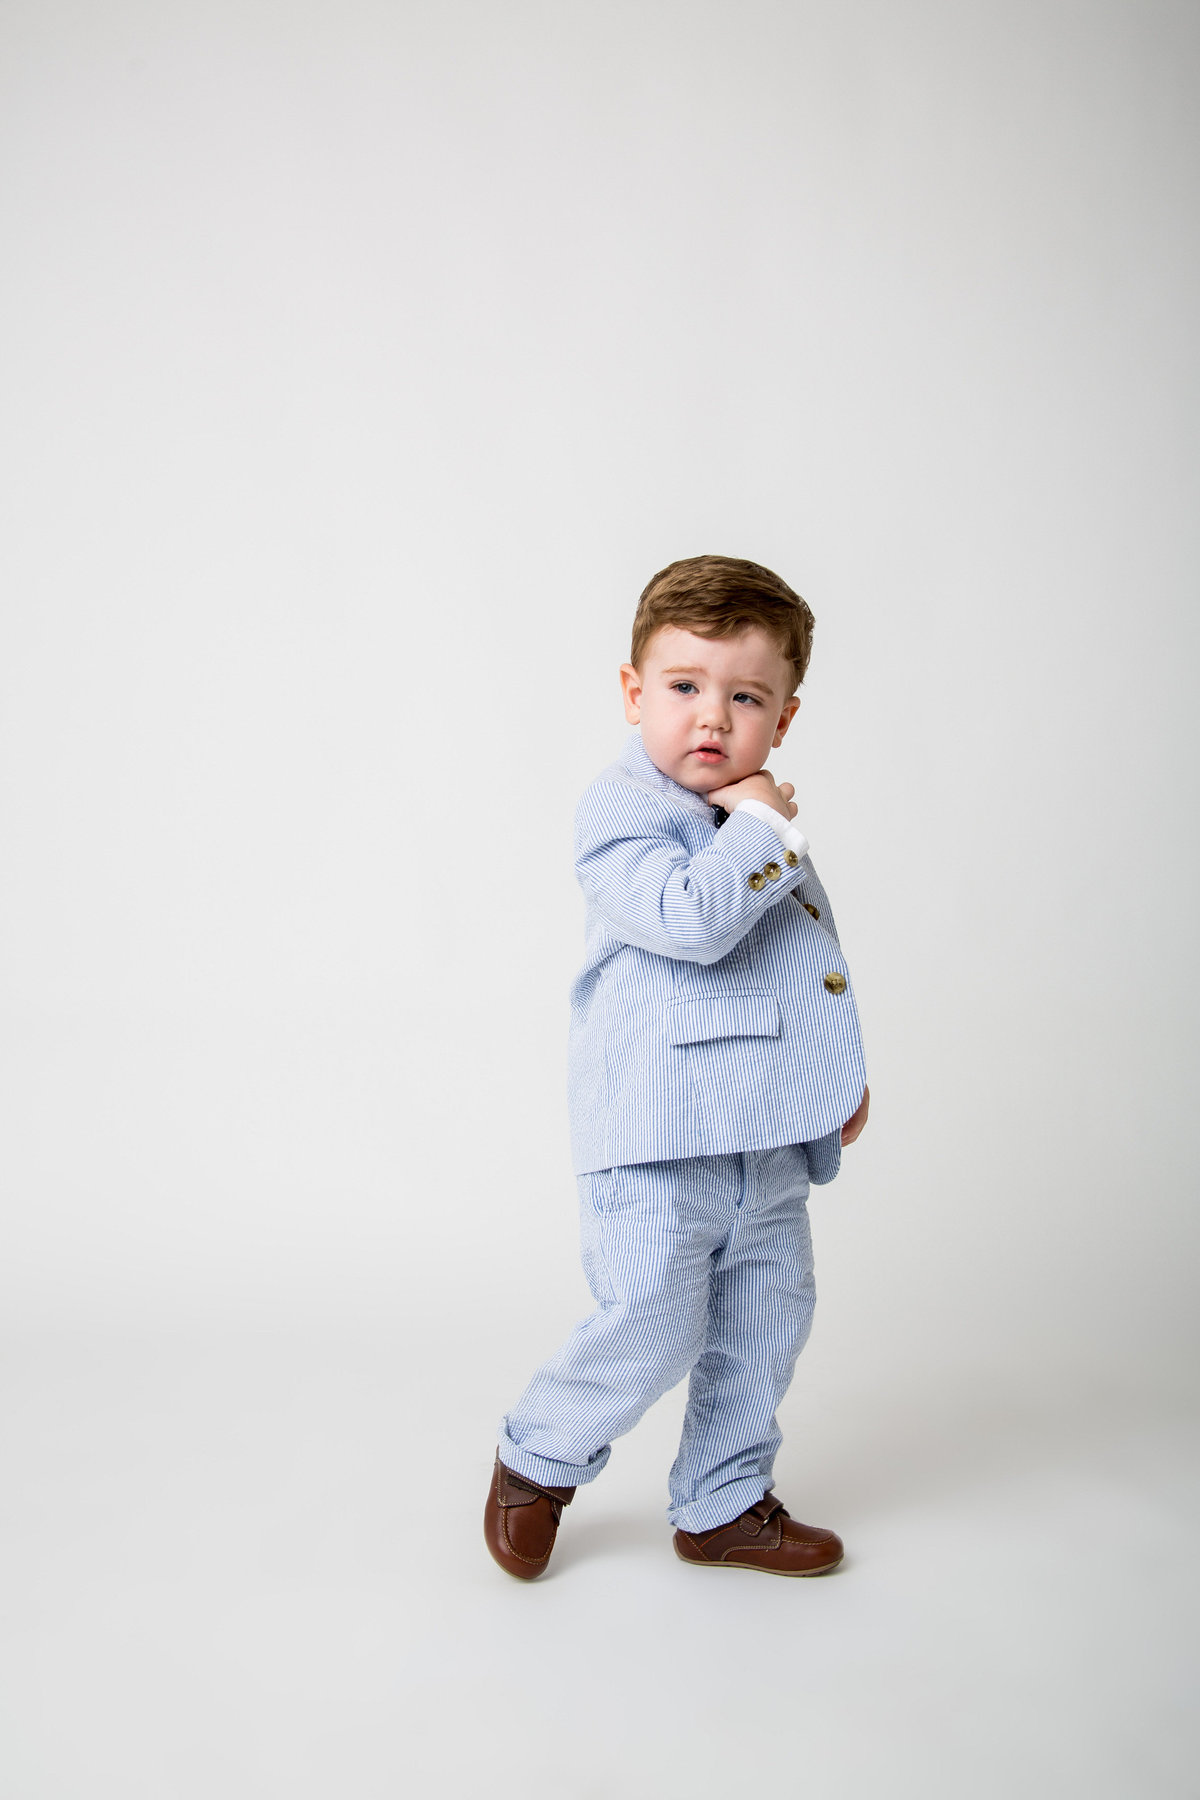 photo of baby toddler wearing blue and white pinstripe suit taken by San Antonio Photographer Expose The Heart Photographer